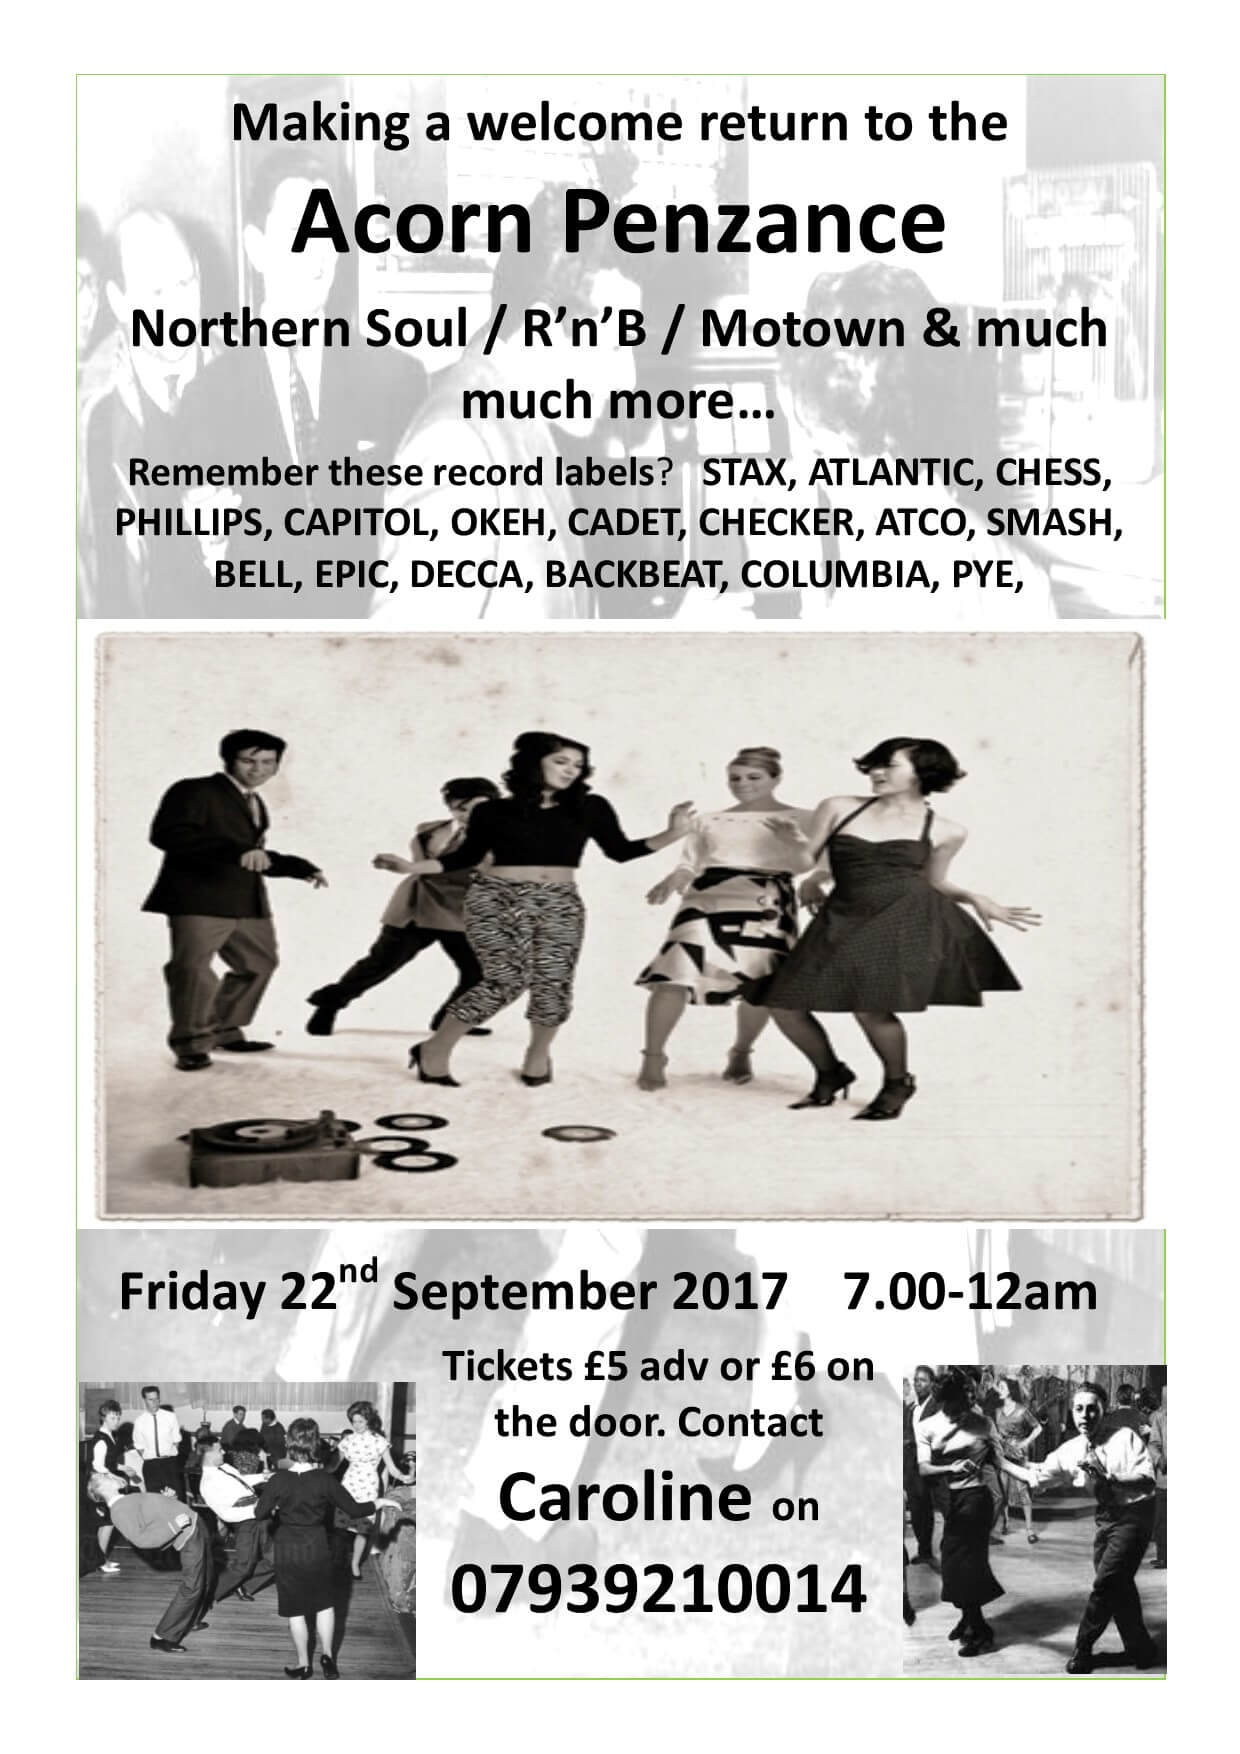 Northern Soul, R&B, Motown and more..